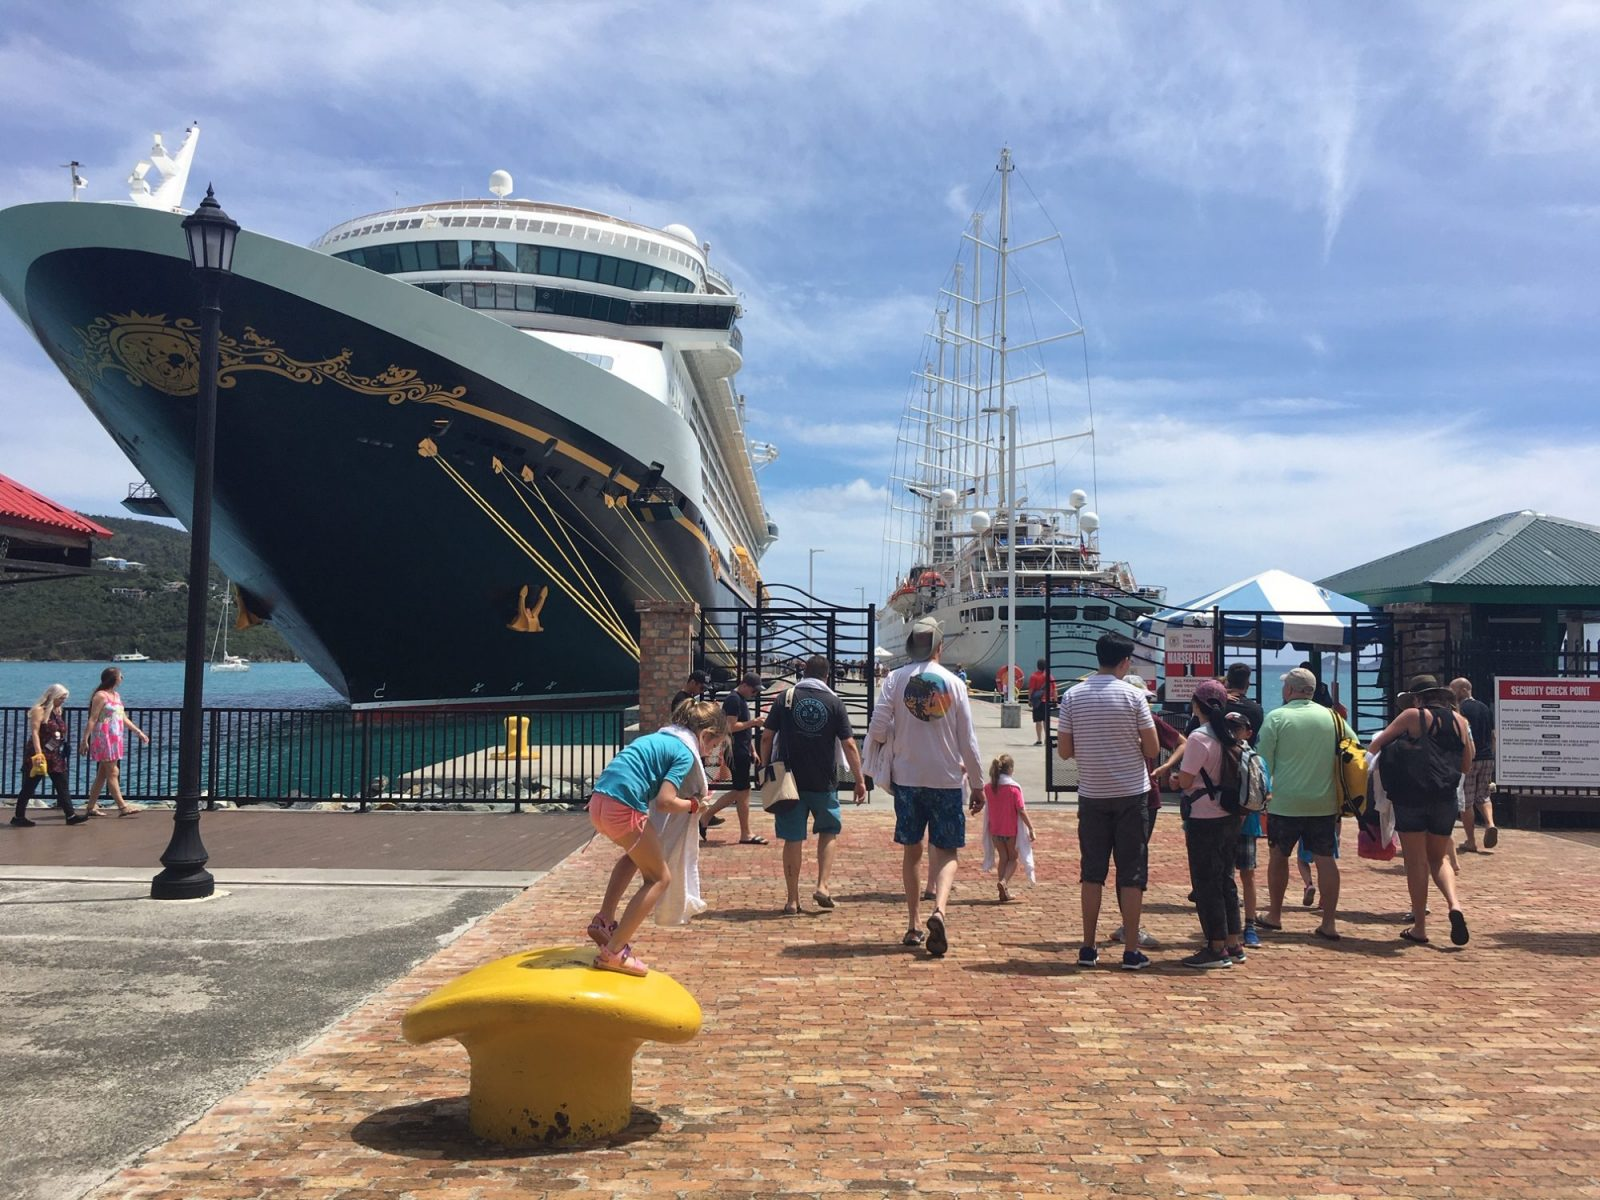 cruise ships on March 10